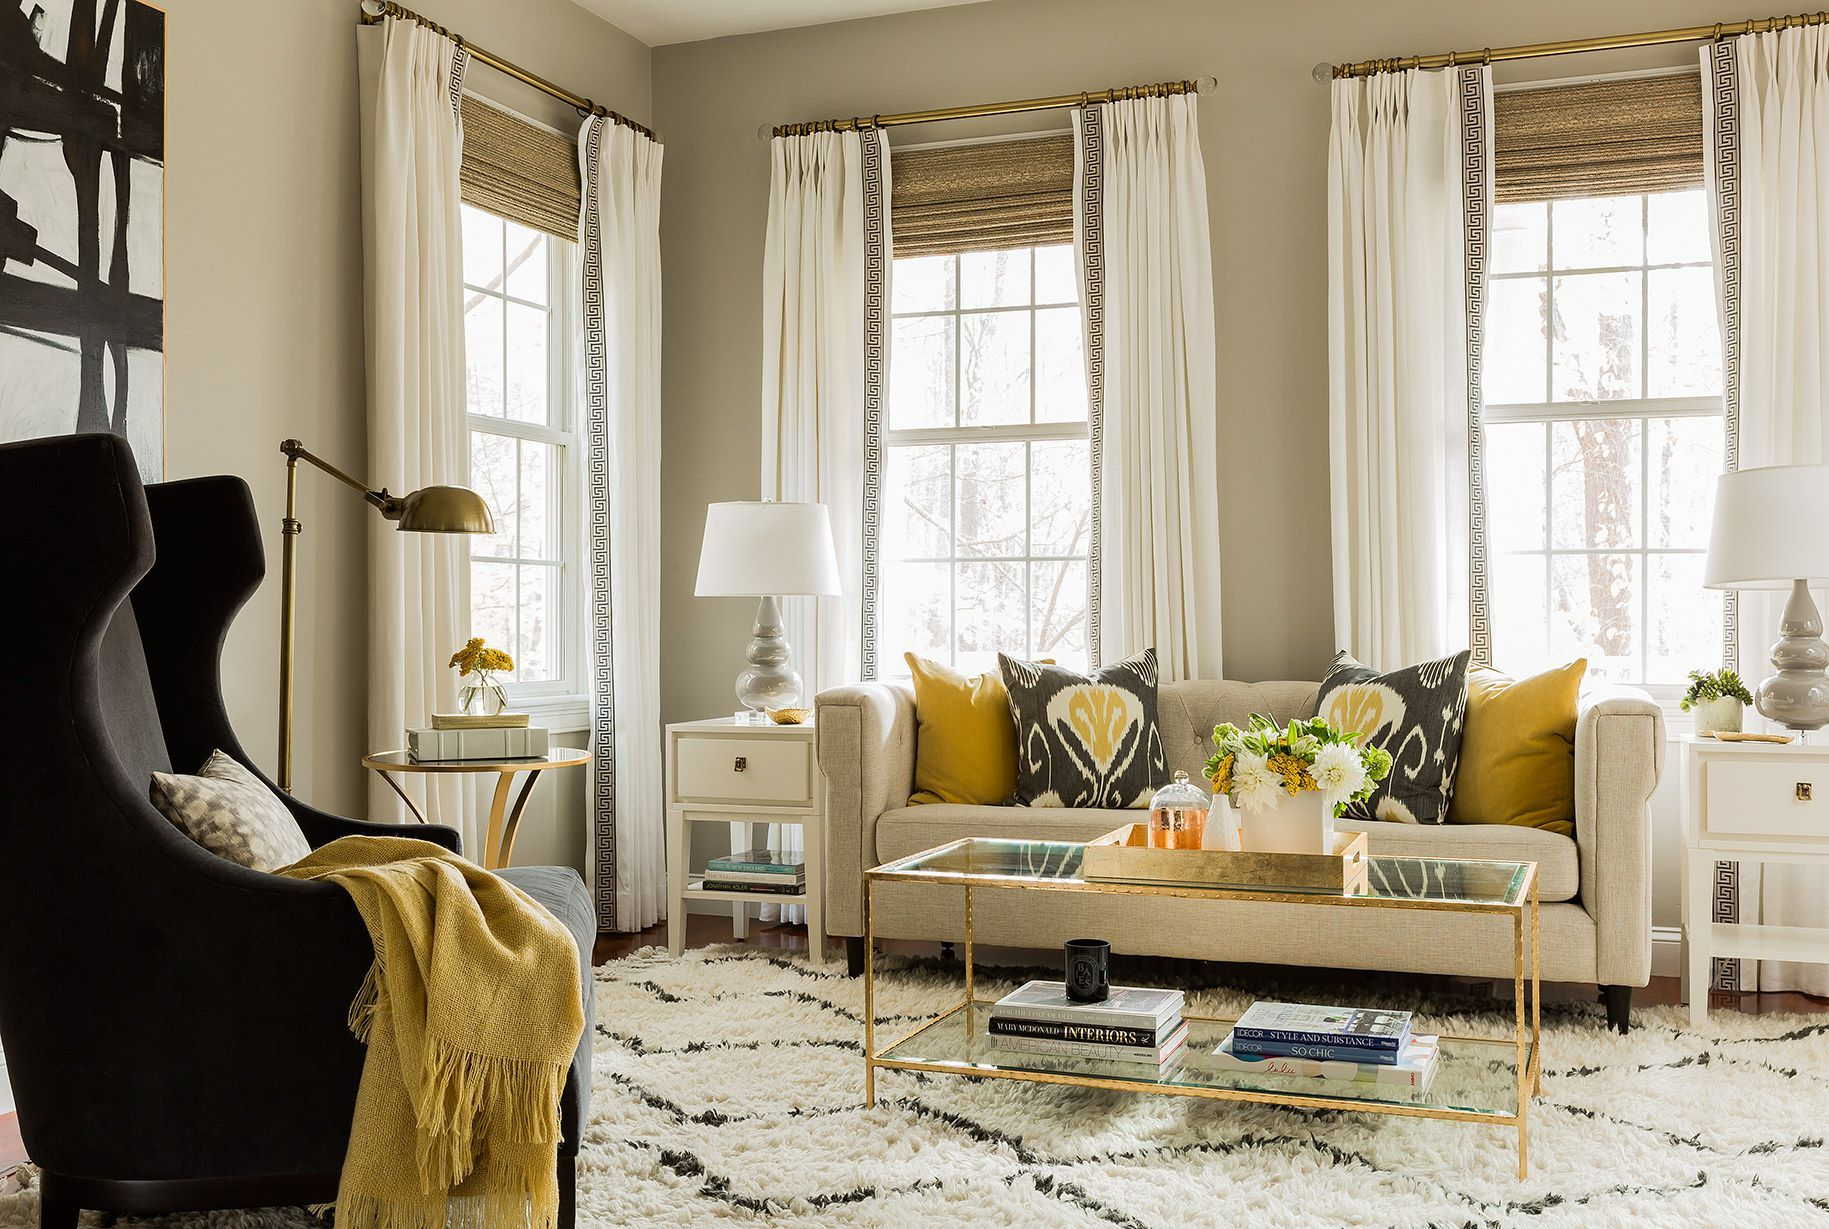 How to Choose Curtains for Living Room - Some Great Ideas ...